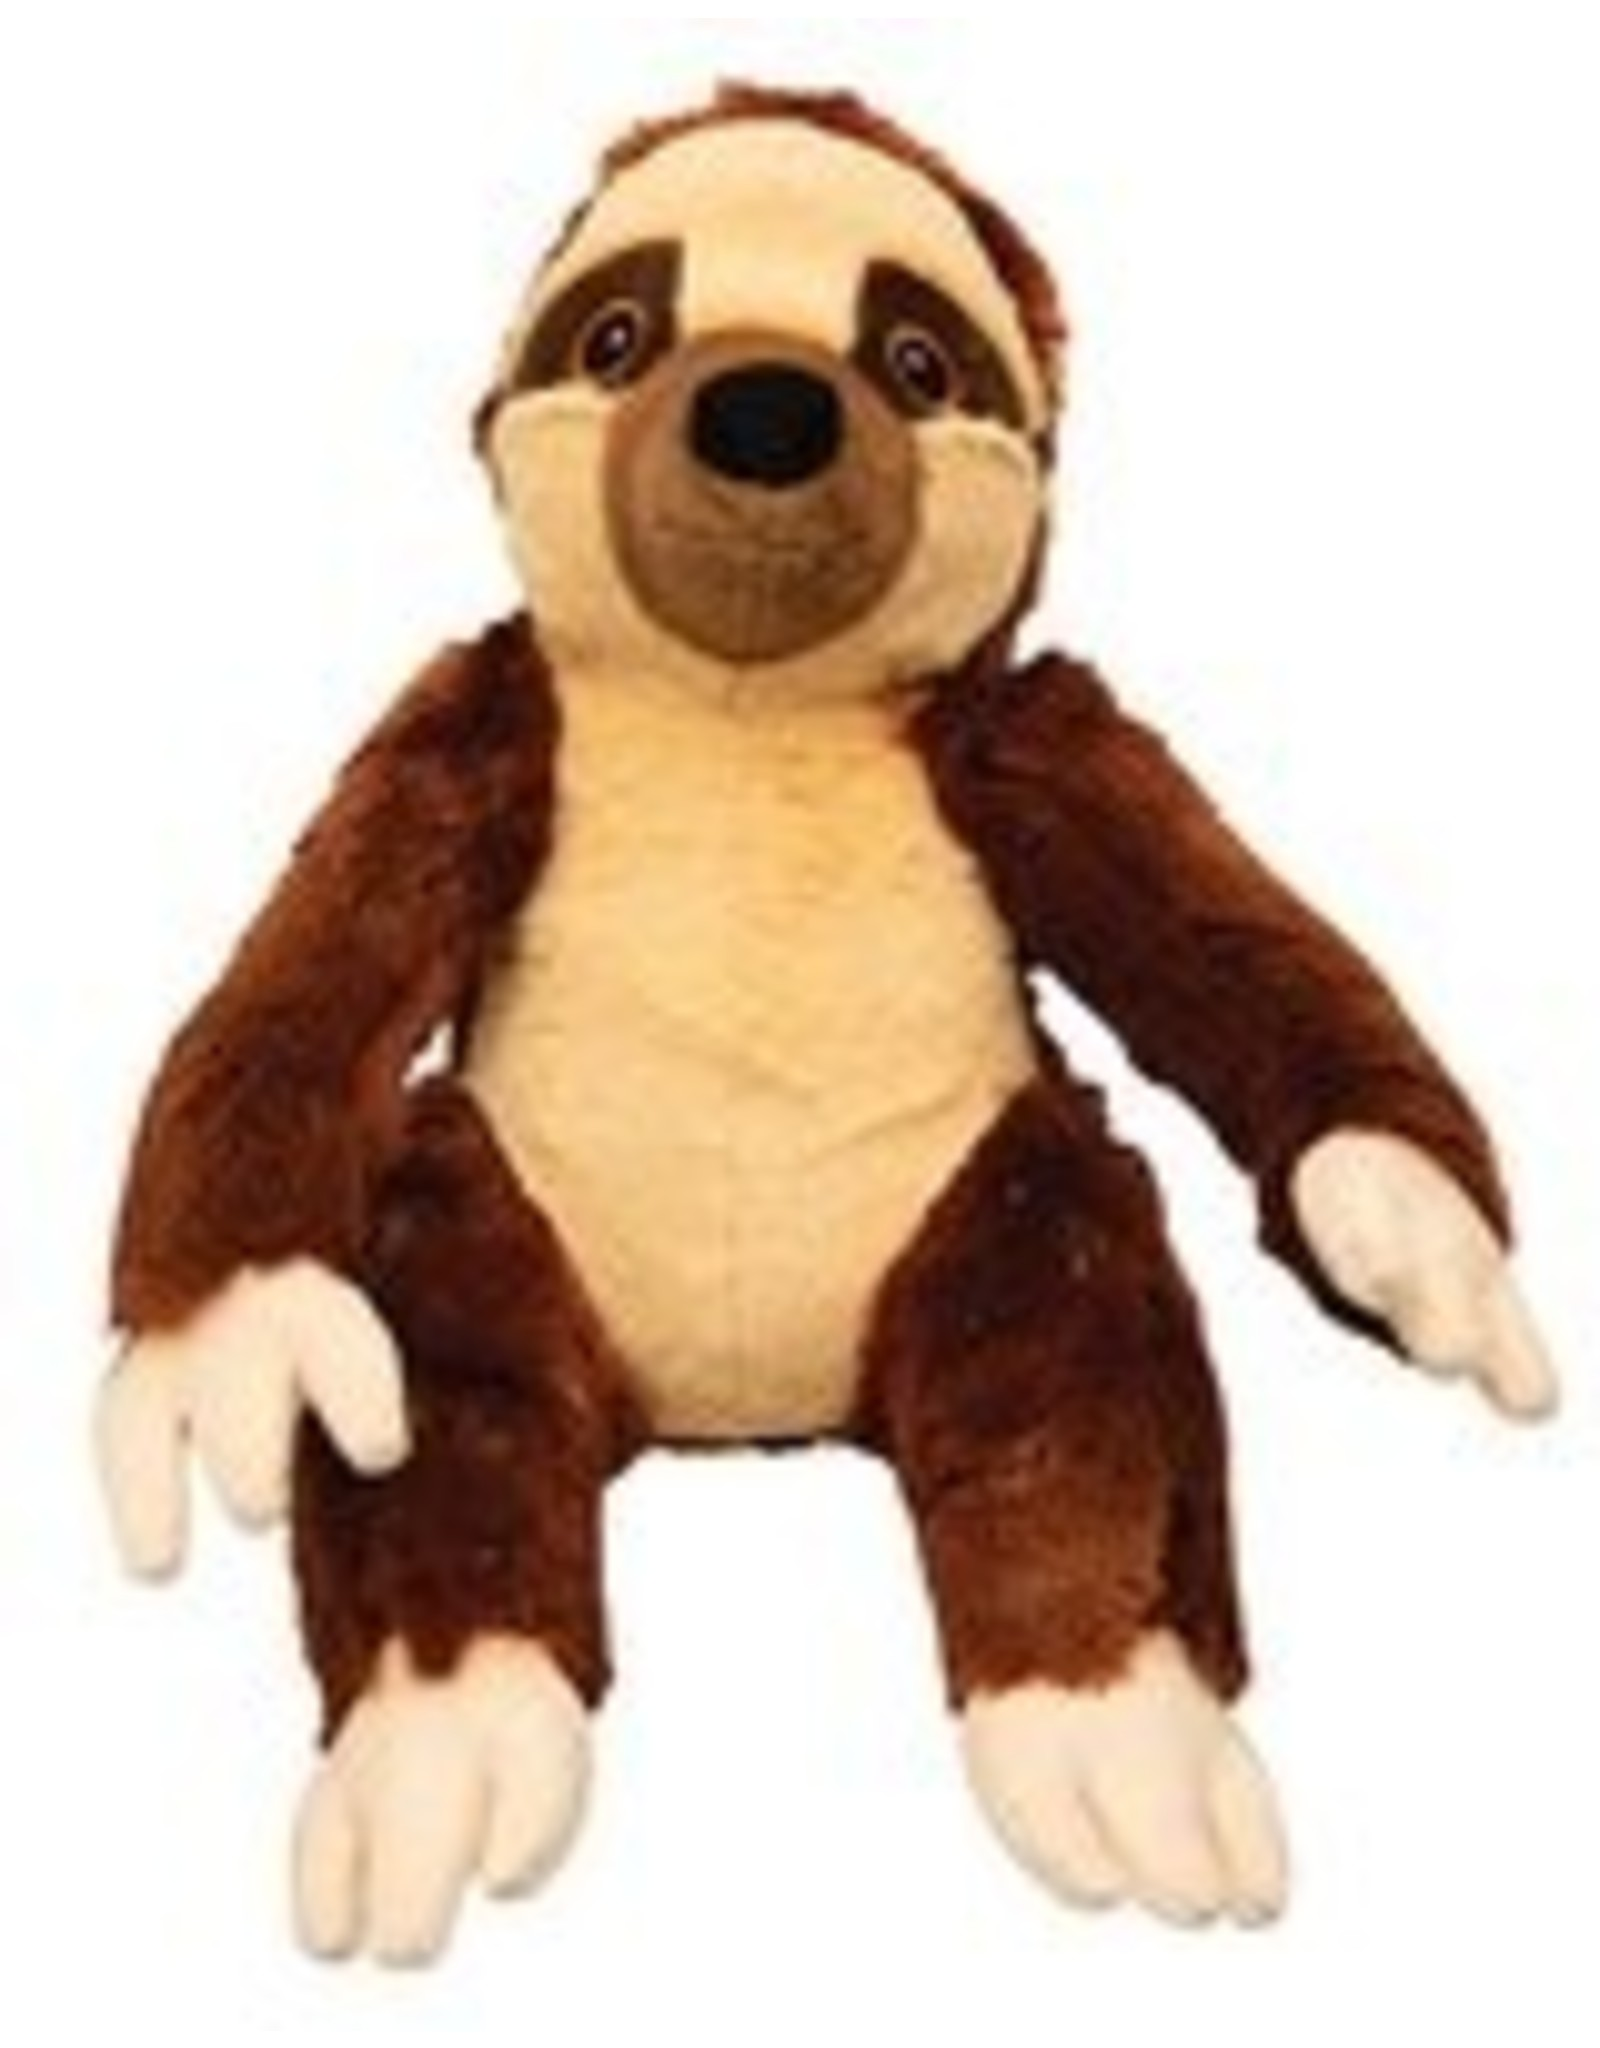 SNUGGAROOZ SNUGAROOZ Sasha the Sloth Plush Dog Toy 11""